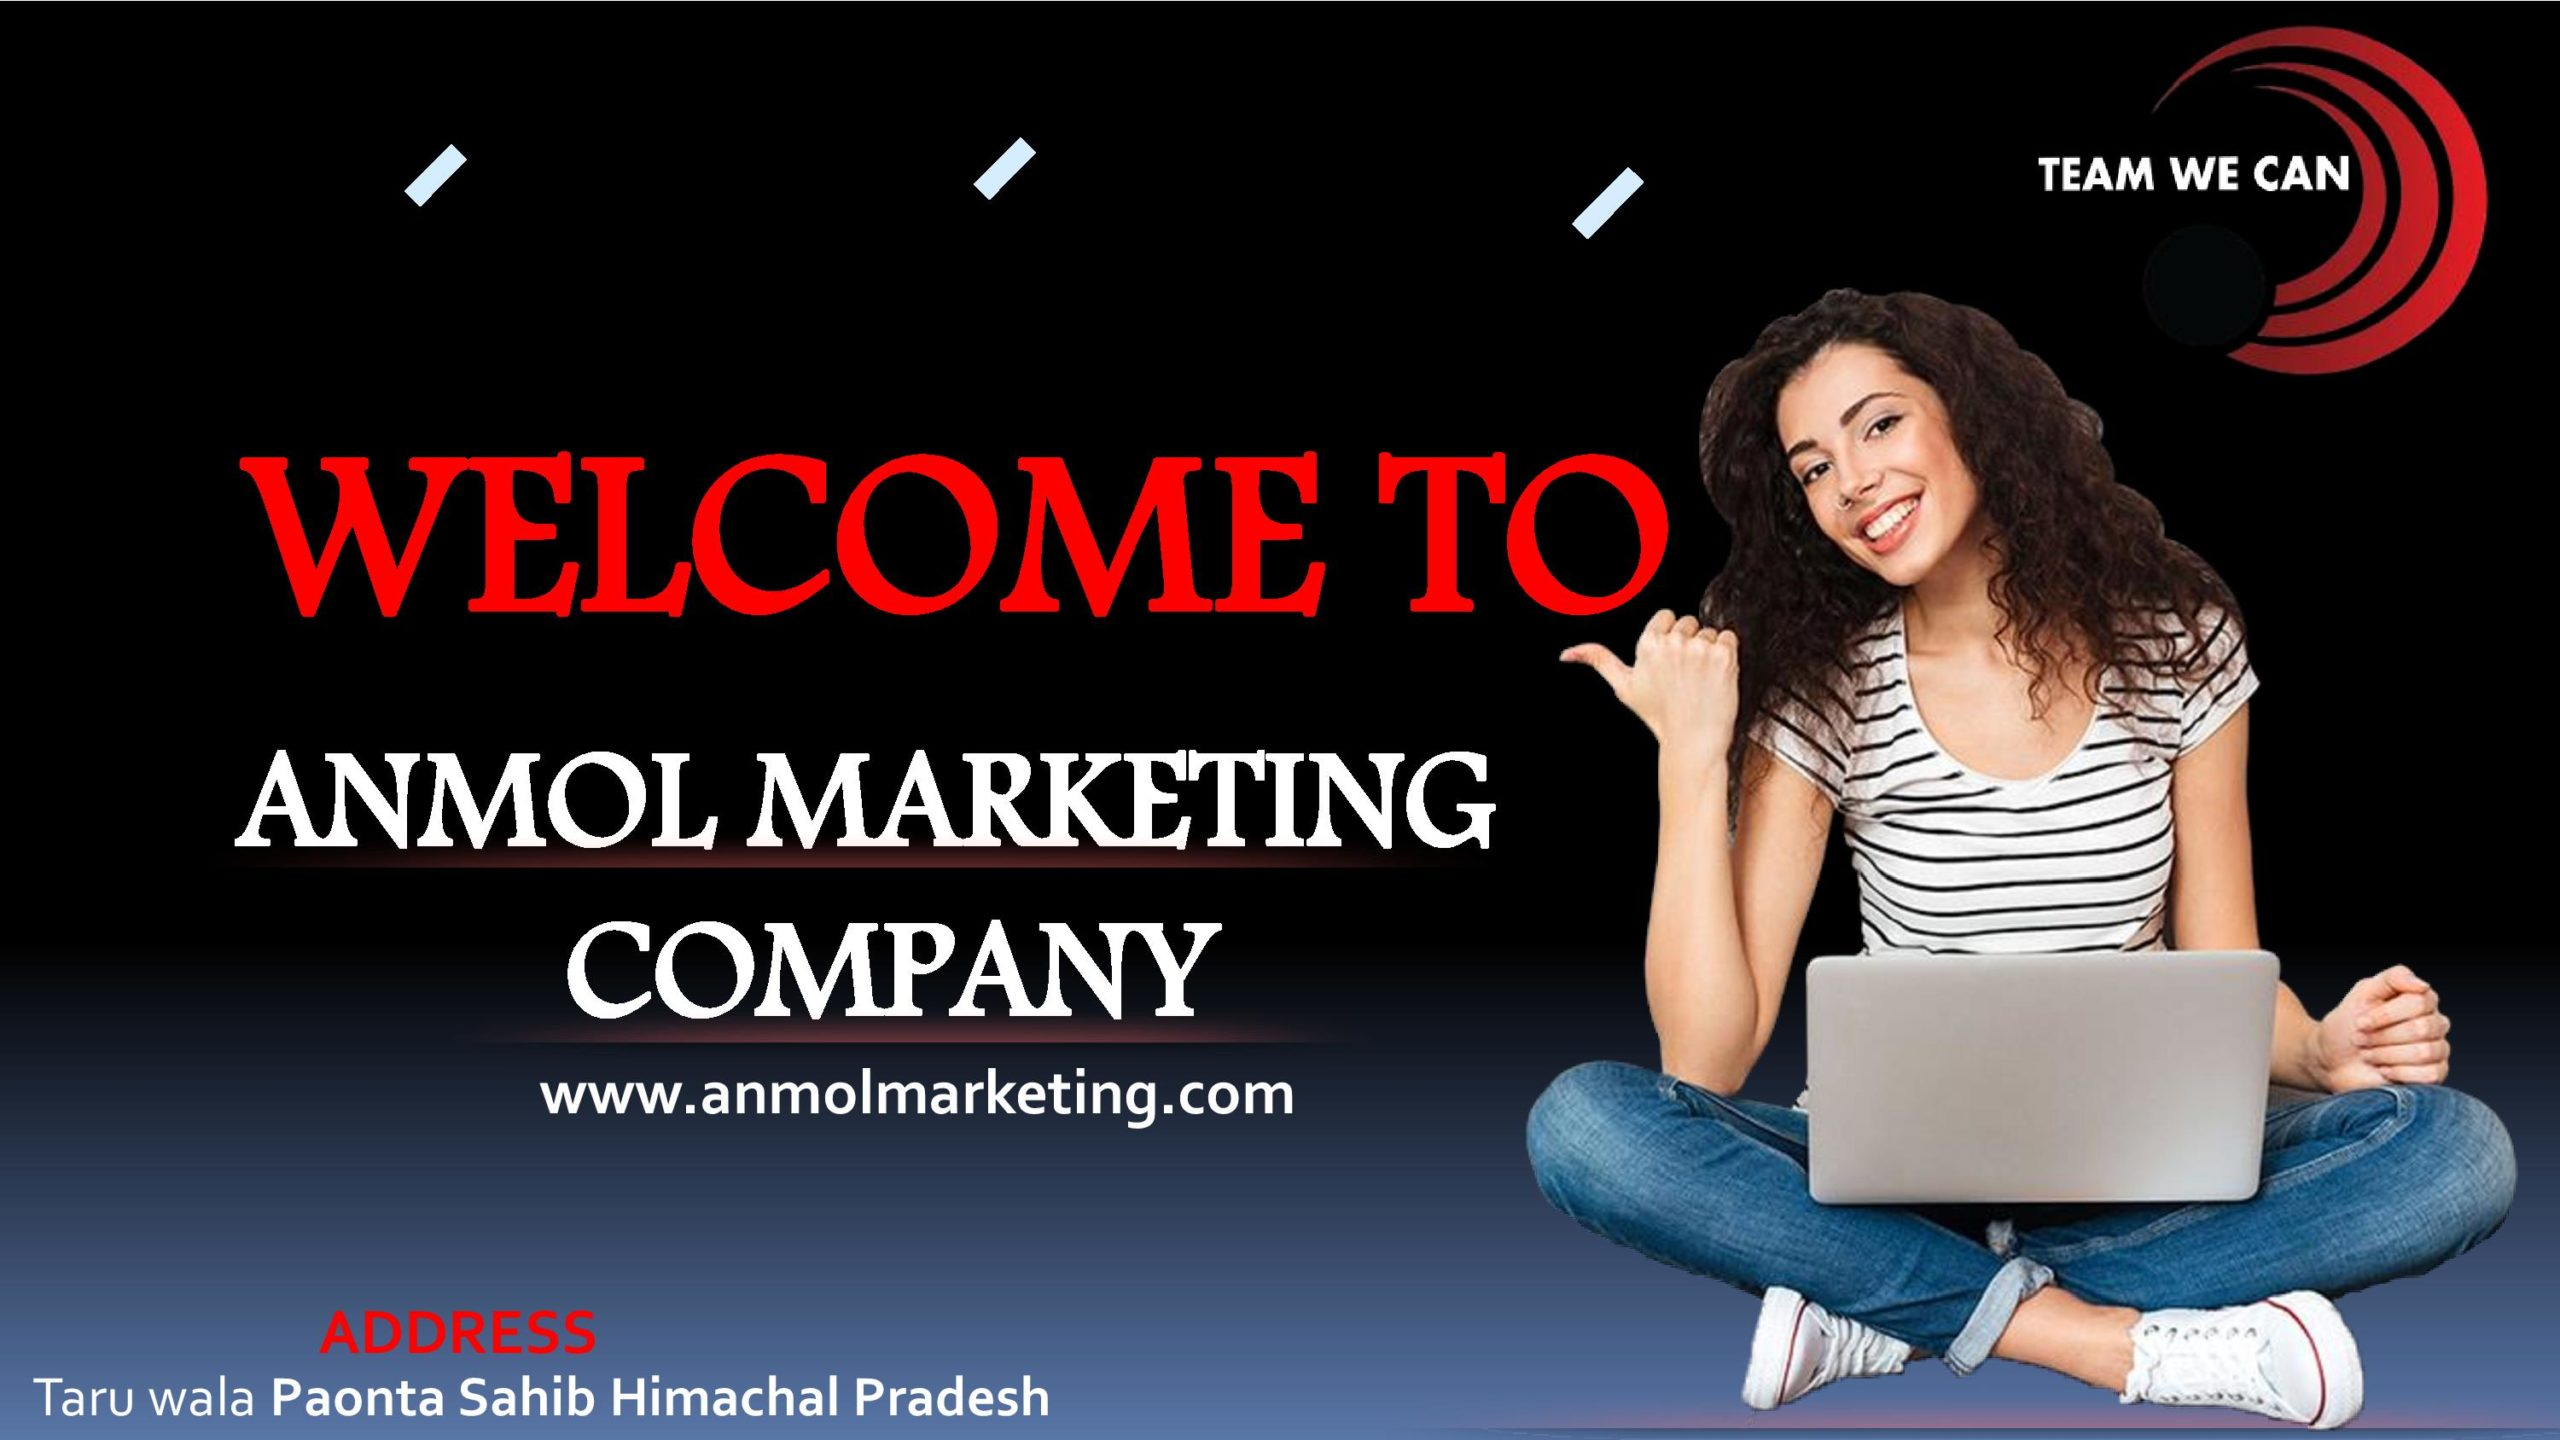 ANMOL MARKETING FULL BUSINESS PLAN